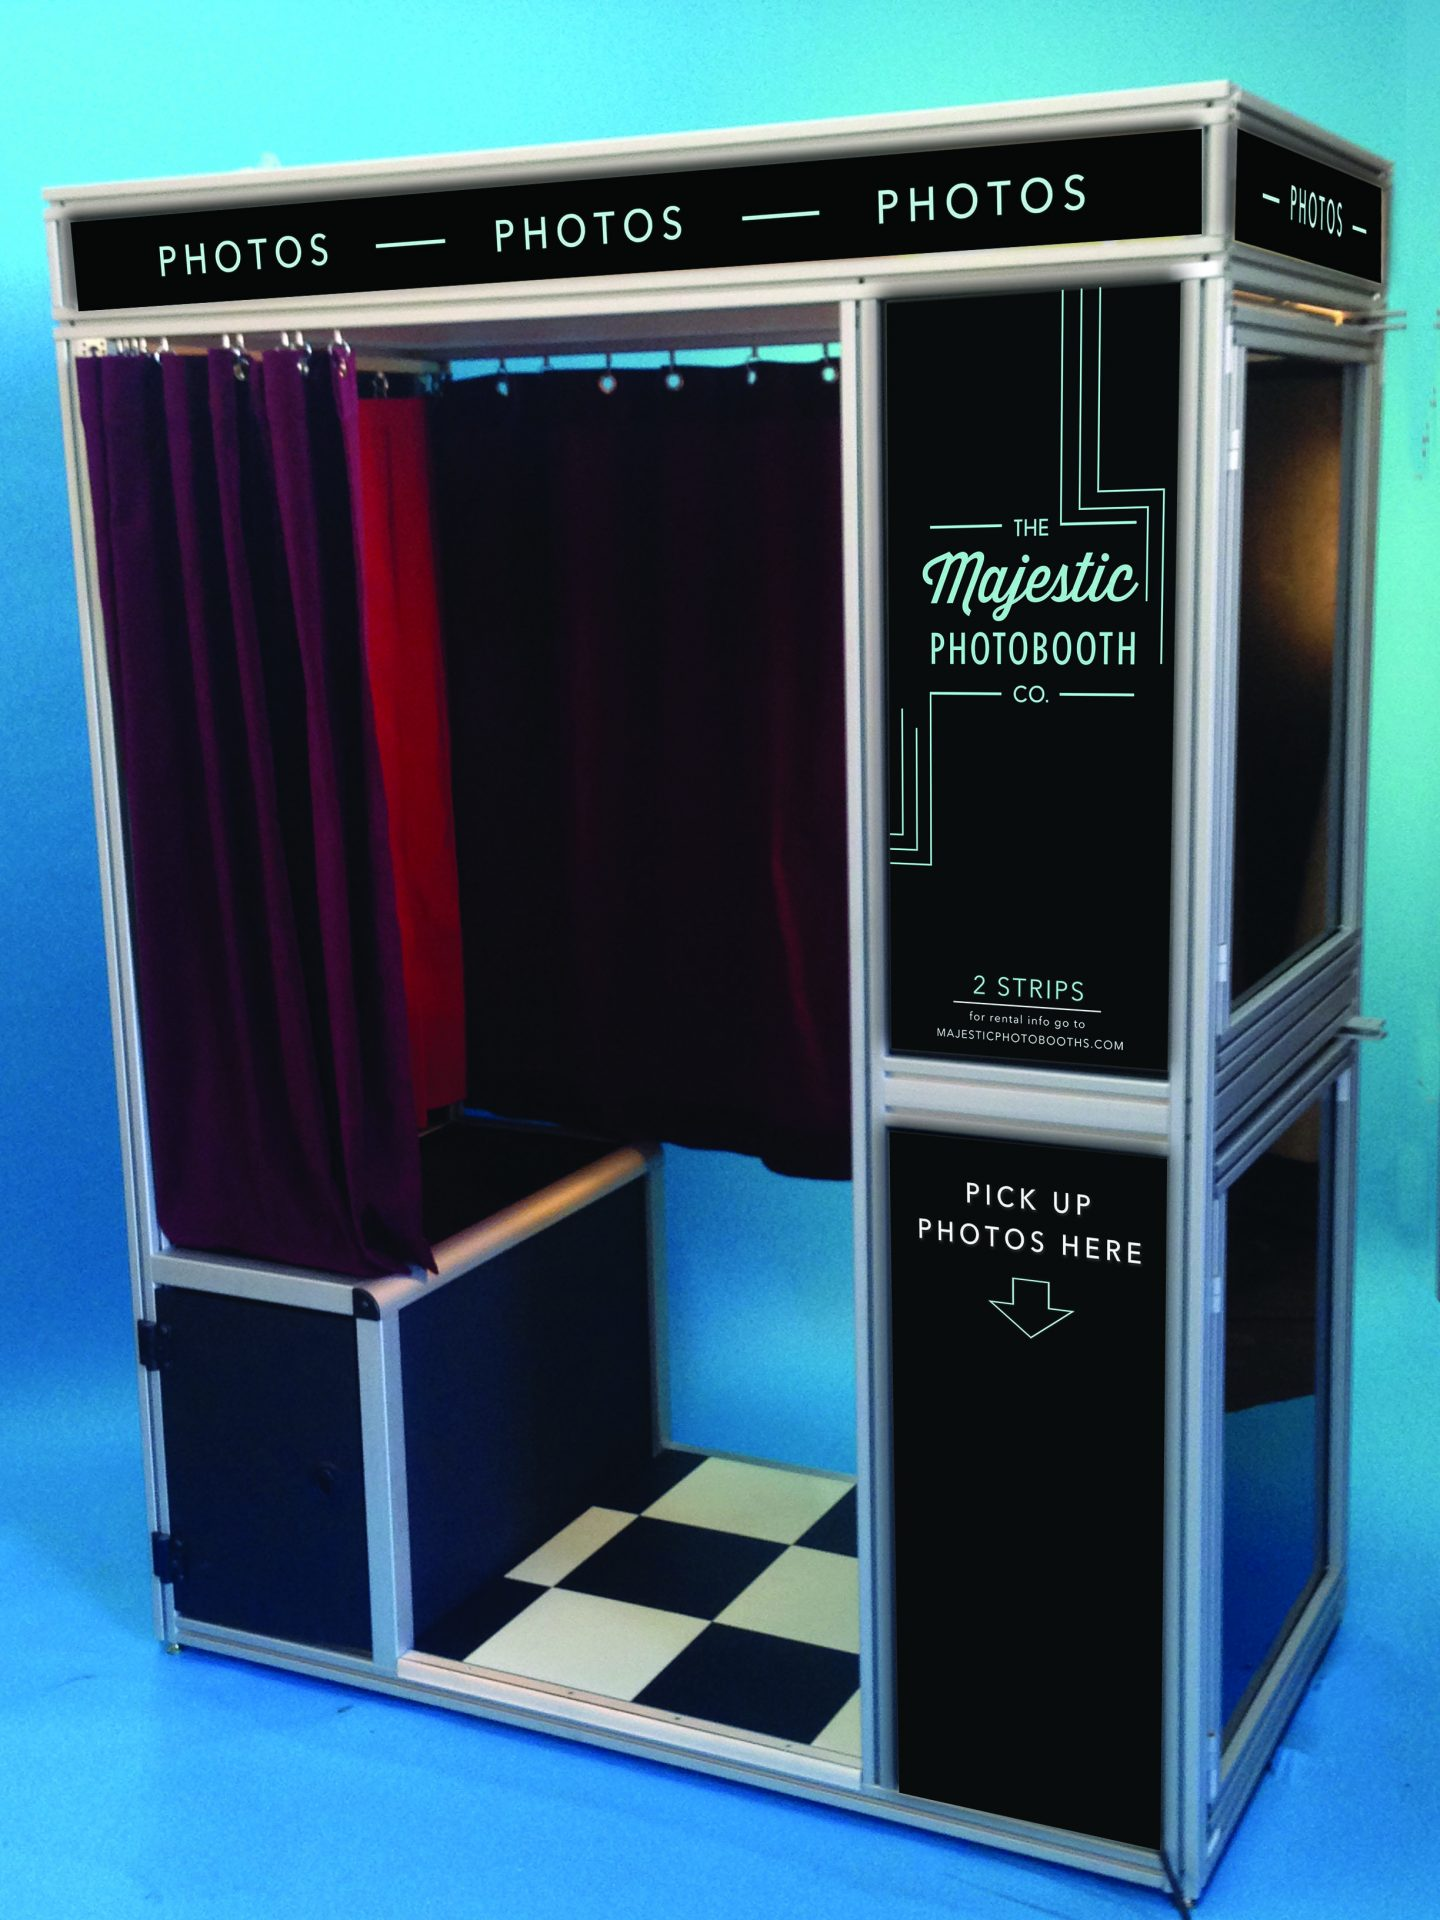 The Majestic Photobooth Company